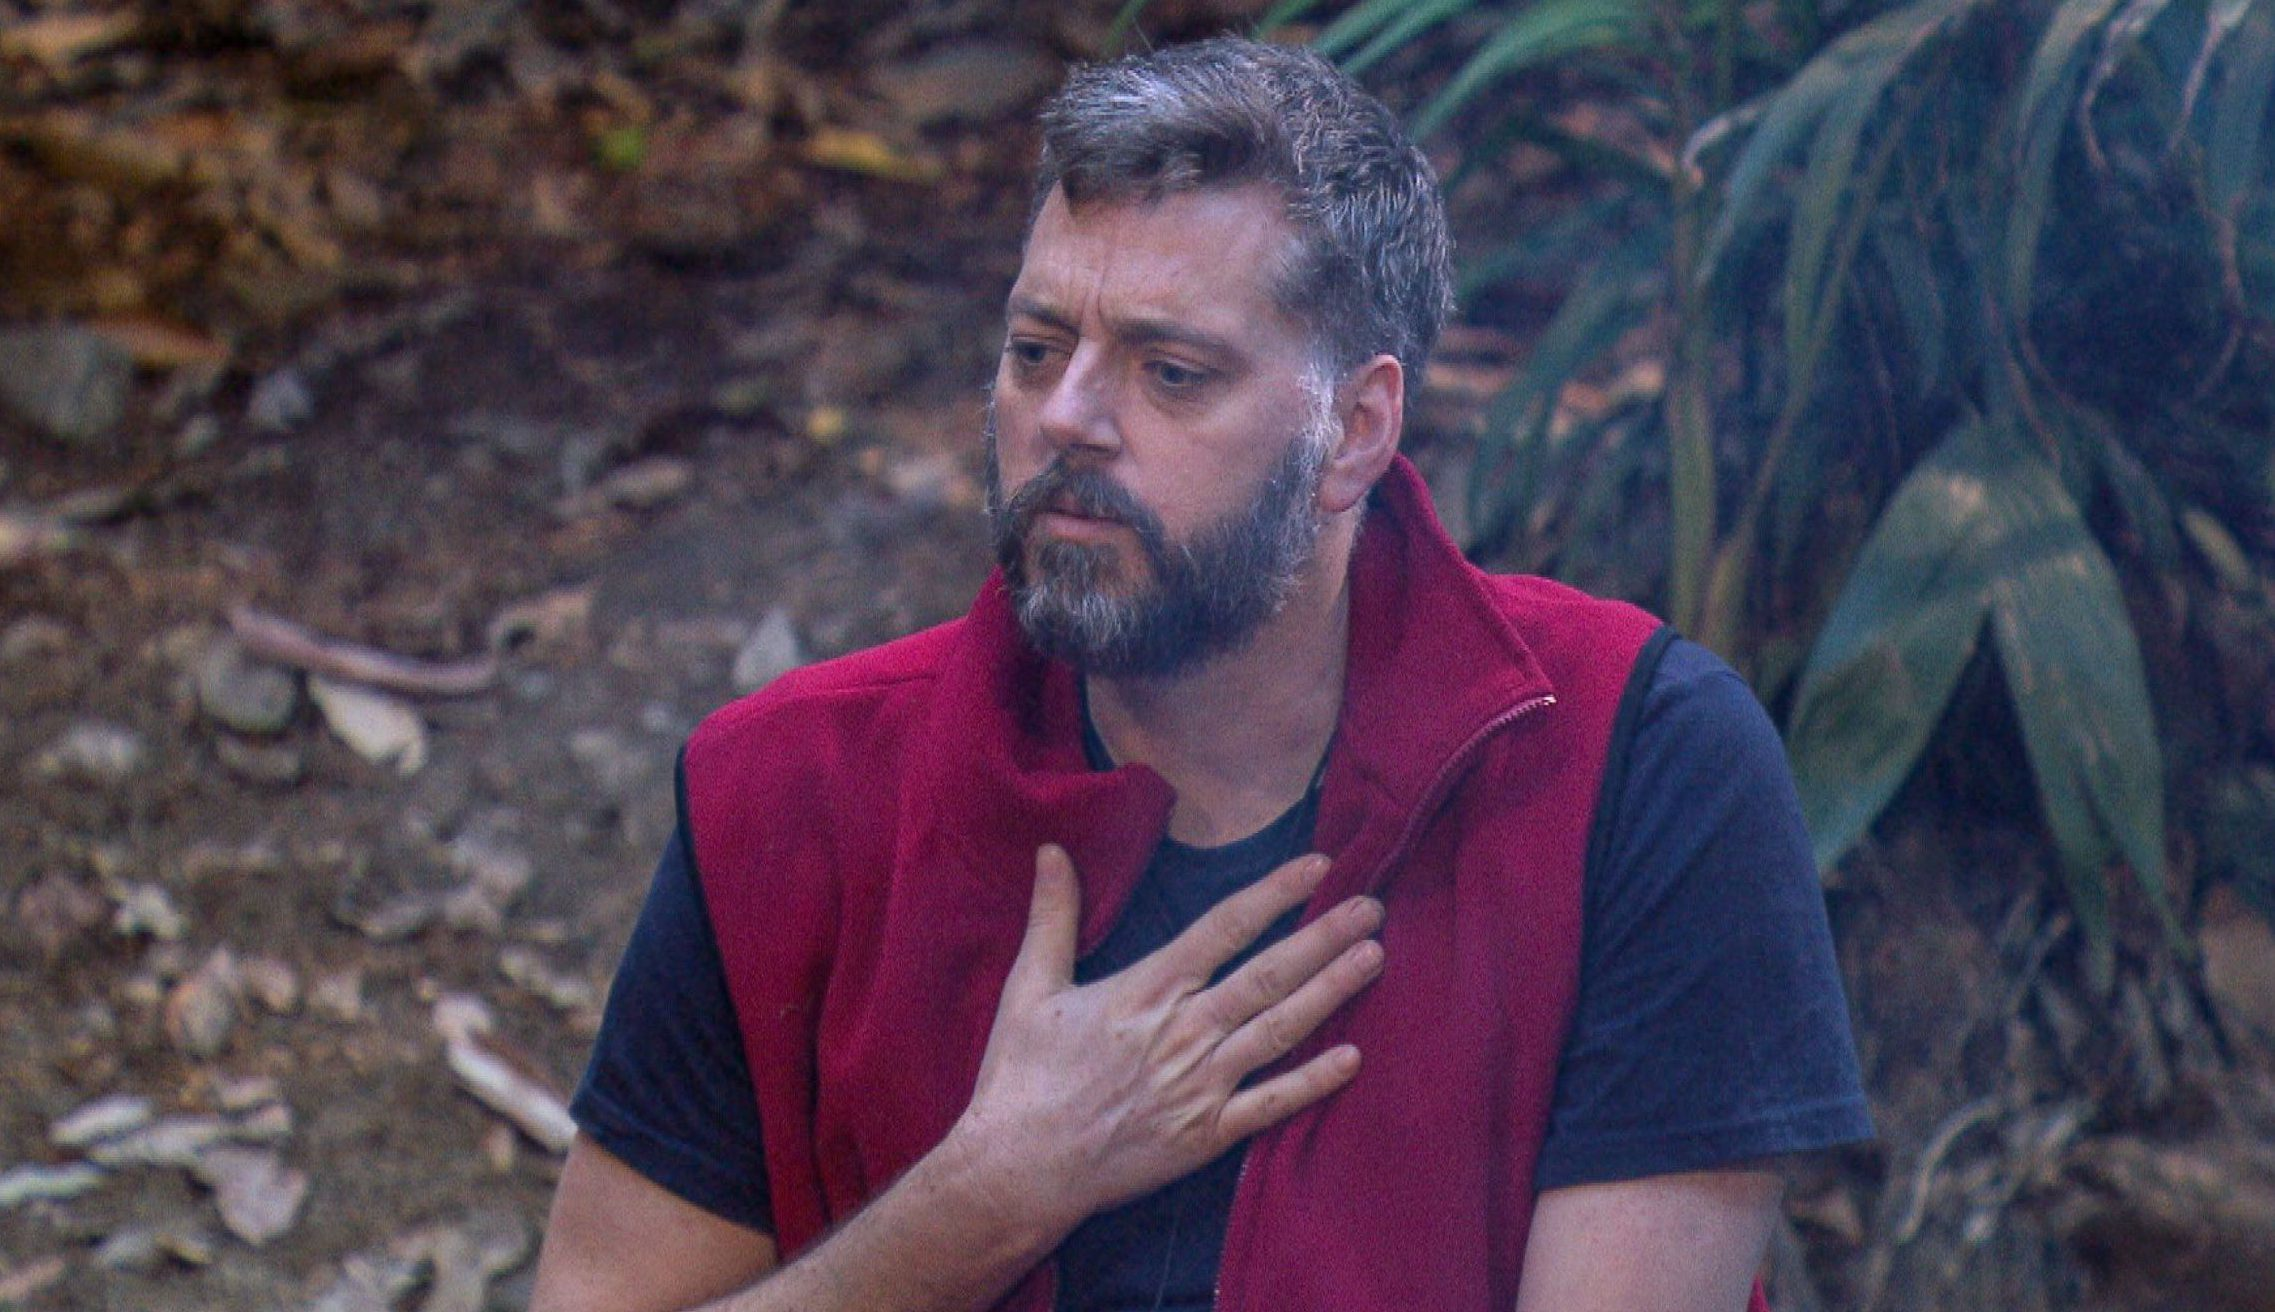 I'm A Celebrity odds show Iain Lee is the bookies' predicted winner